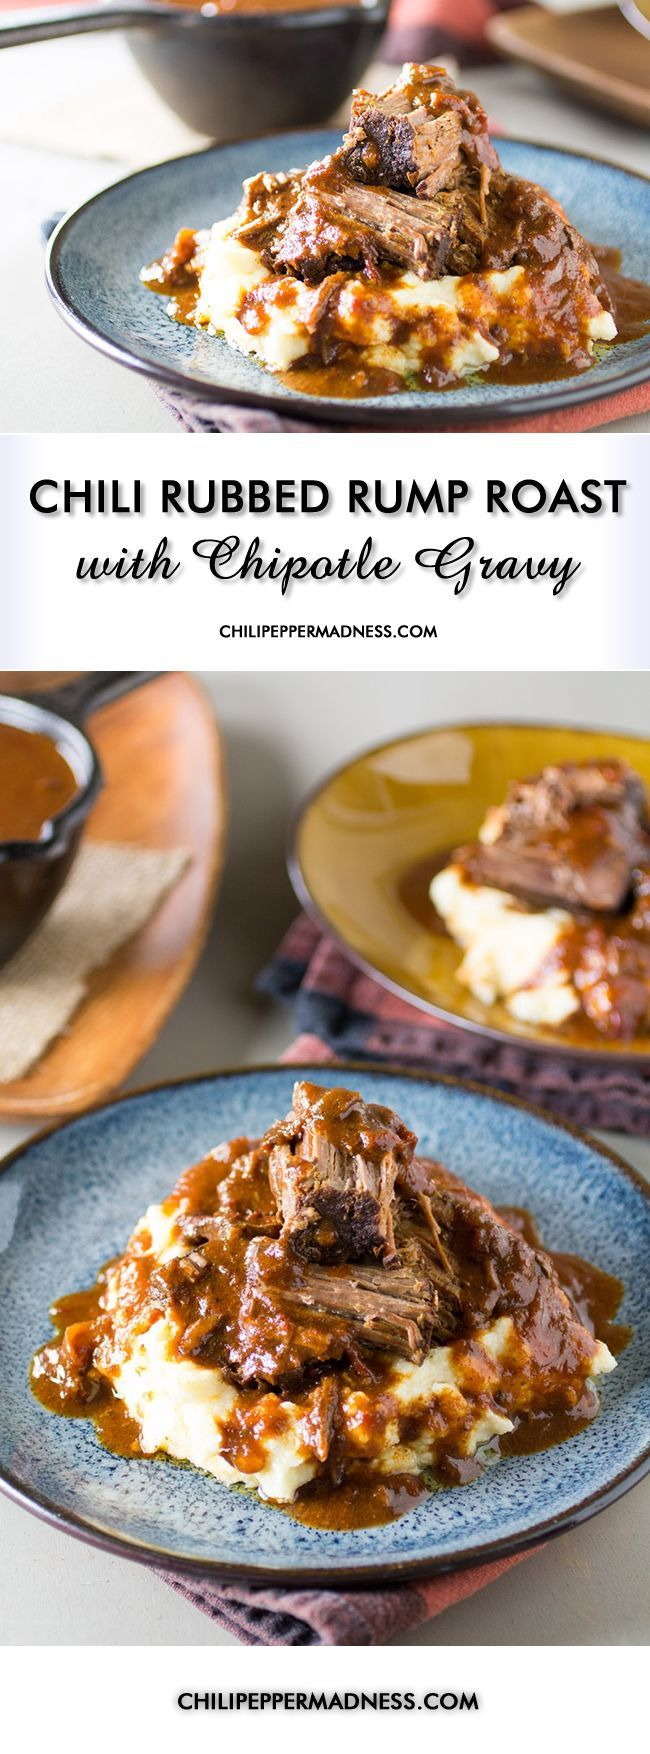 Chili Rubbed Rump Roast with Chipotle Gravy - A recipe for rump roast rubbed with a rich, spicy chili blend, then slow cooked and served with homemade chipotle gravy. We're talking comfort food at its finest. Seriously. Chipotle Gravy! Don't forget the Cheesy Garlic Mashed Potatoes.